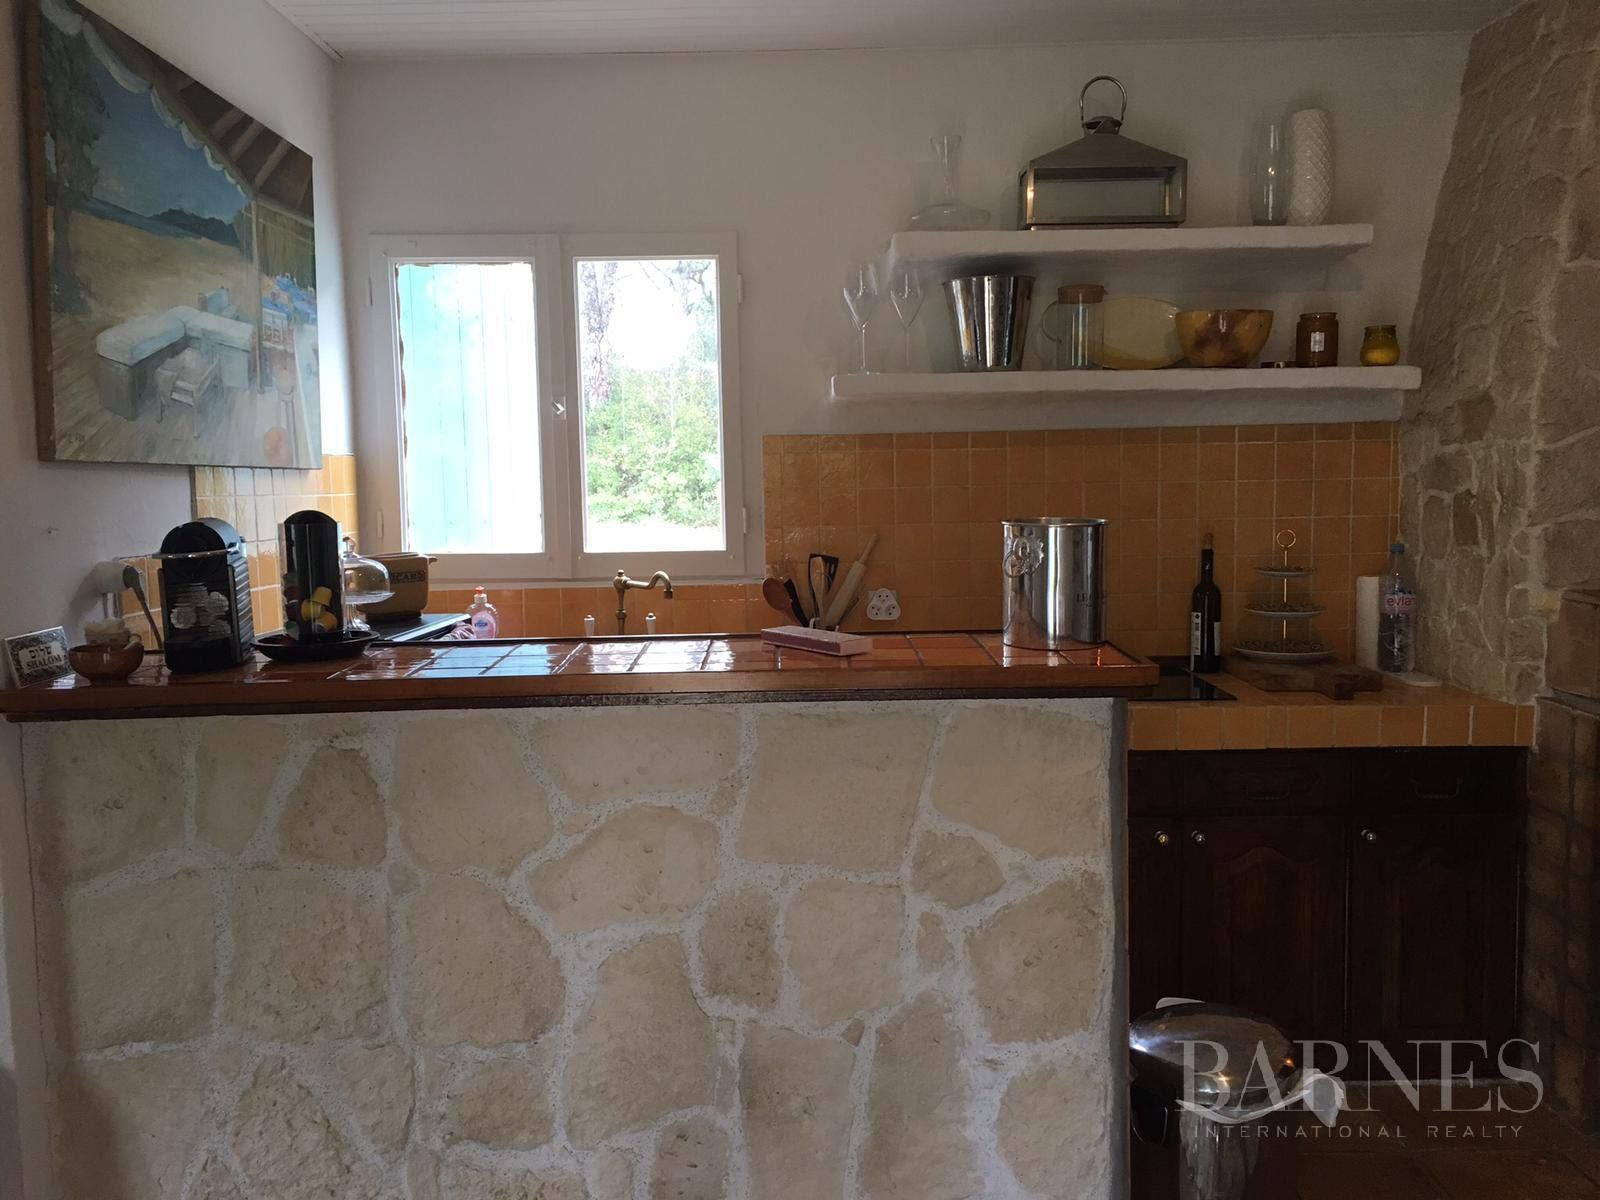 RAMATUELLE - House to renovate with project in progress